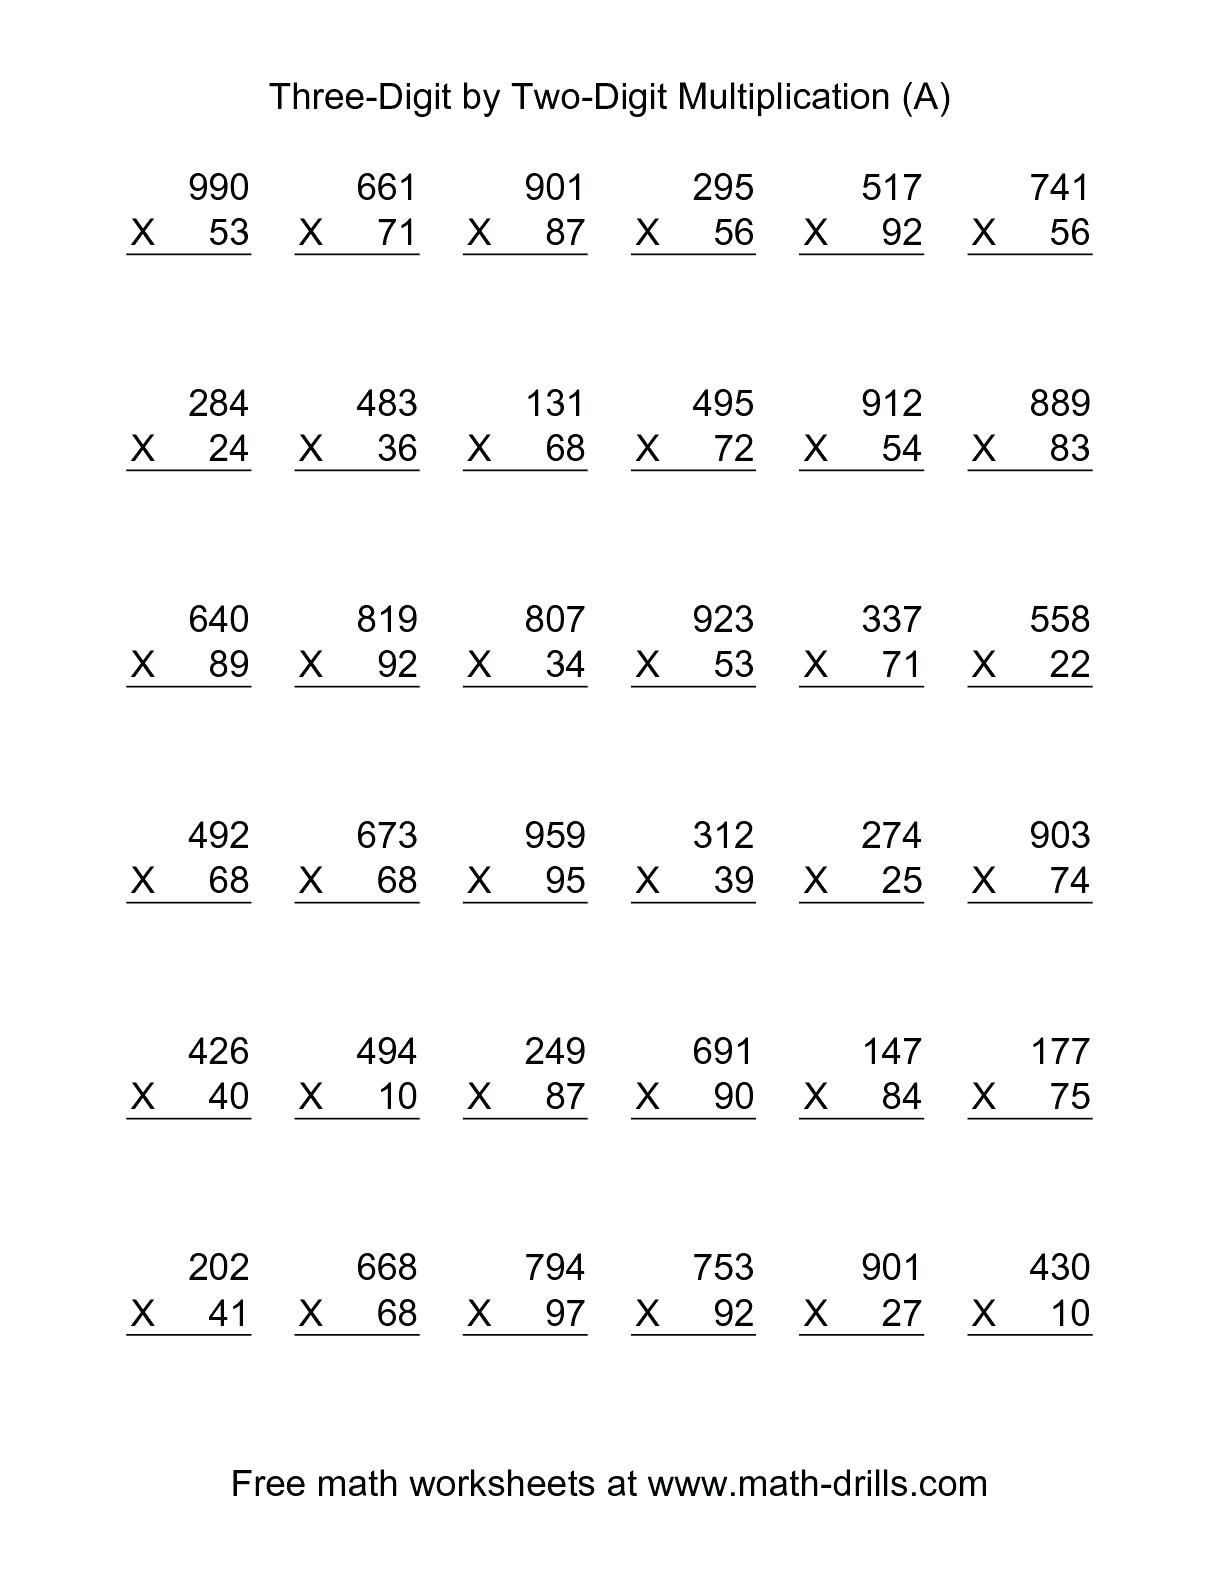 Polygons Worksheets 5th Grade Free Printable Math Worksheets for 5th Grade